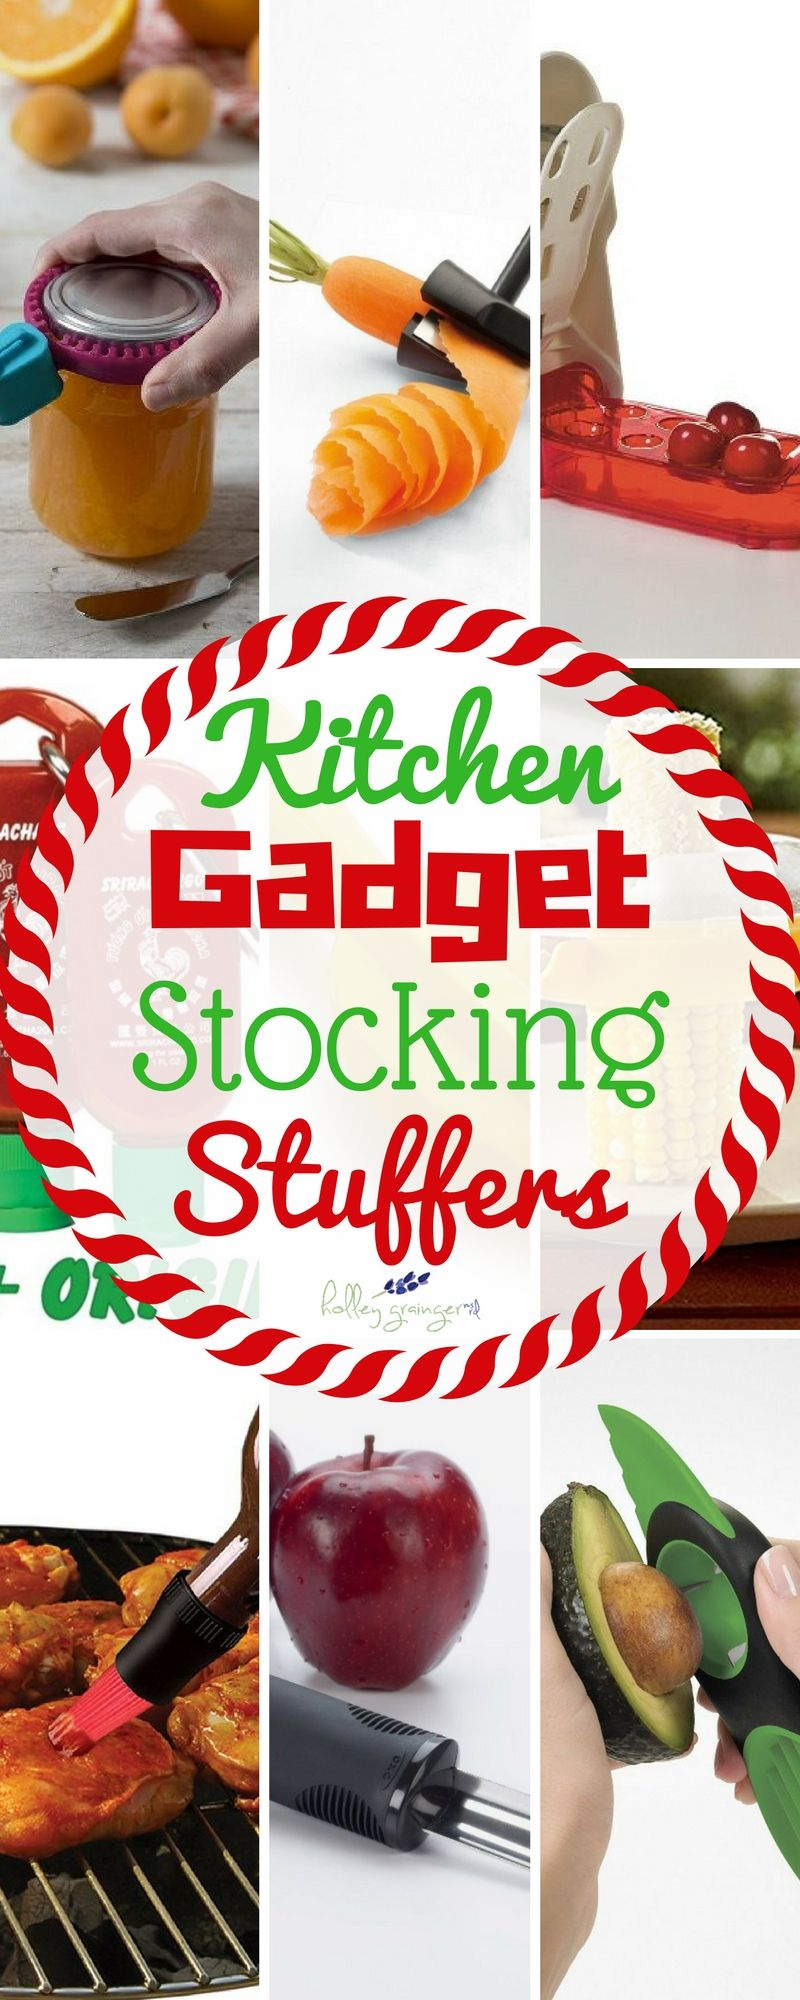 Stuff your stockings with these fun kitchen gadgets my kitchen gadget stocking stuffers are the perfect mini gifts for your foodie friends check it out